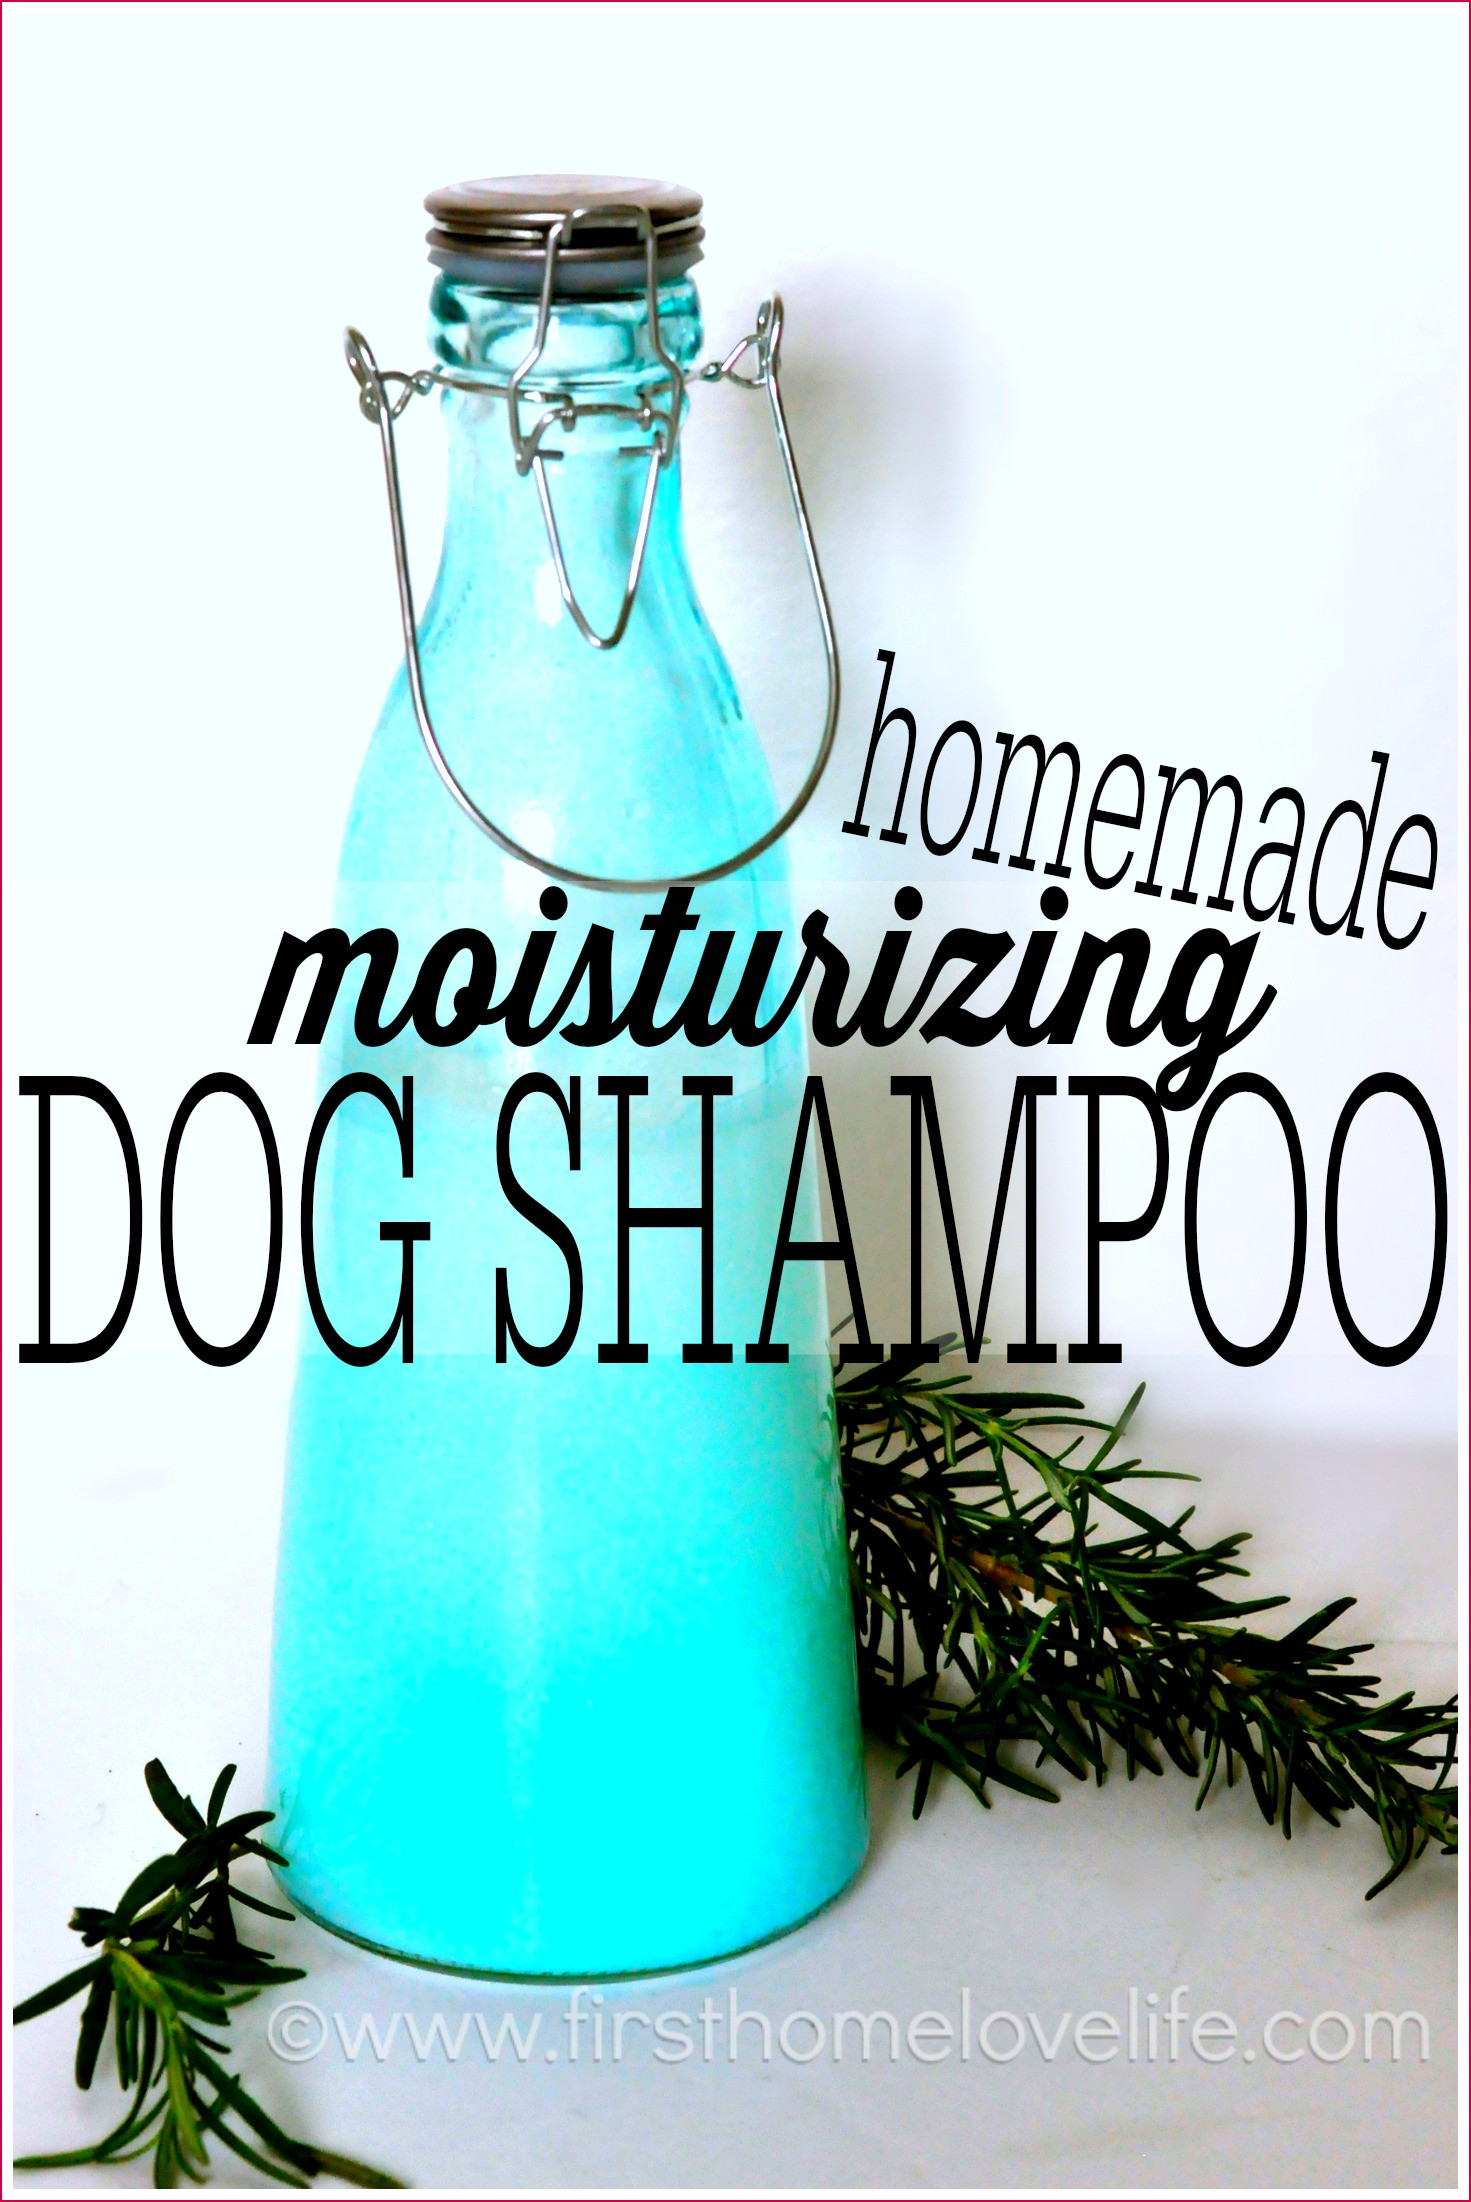 Diy Shampoo  Homemade Dog Shampoo First Home Love Life